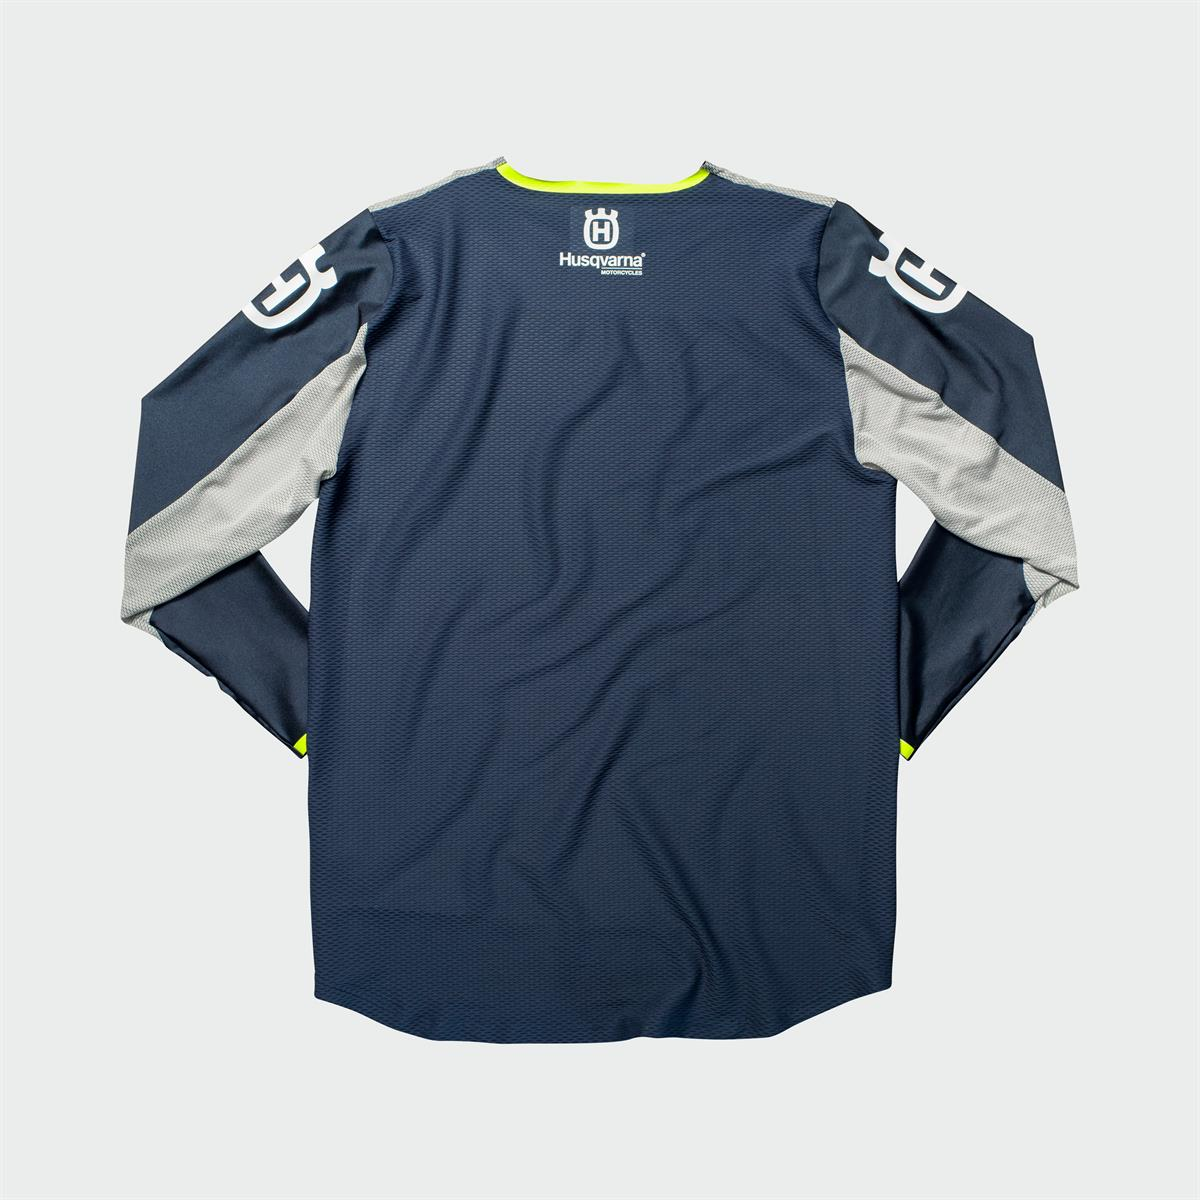 Husqvarna Functional Clothing - RAILED SHIRT BLUE back